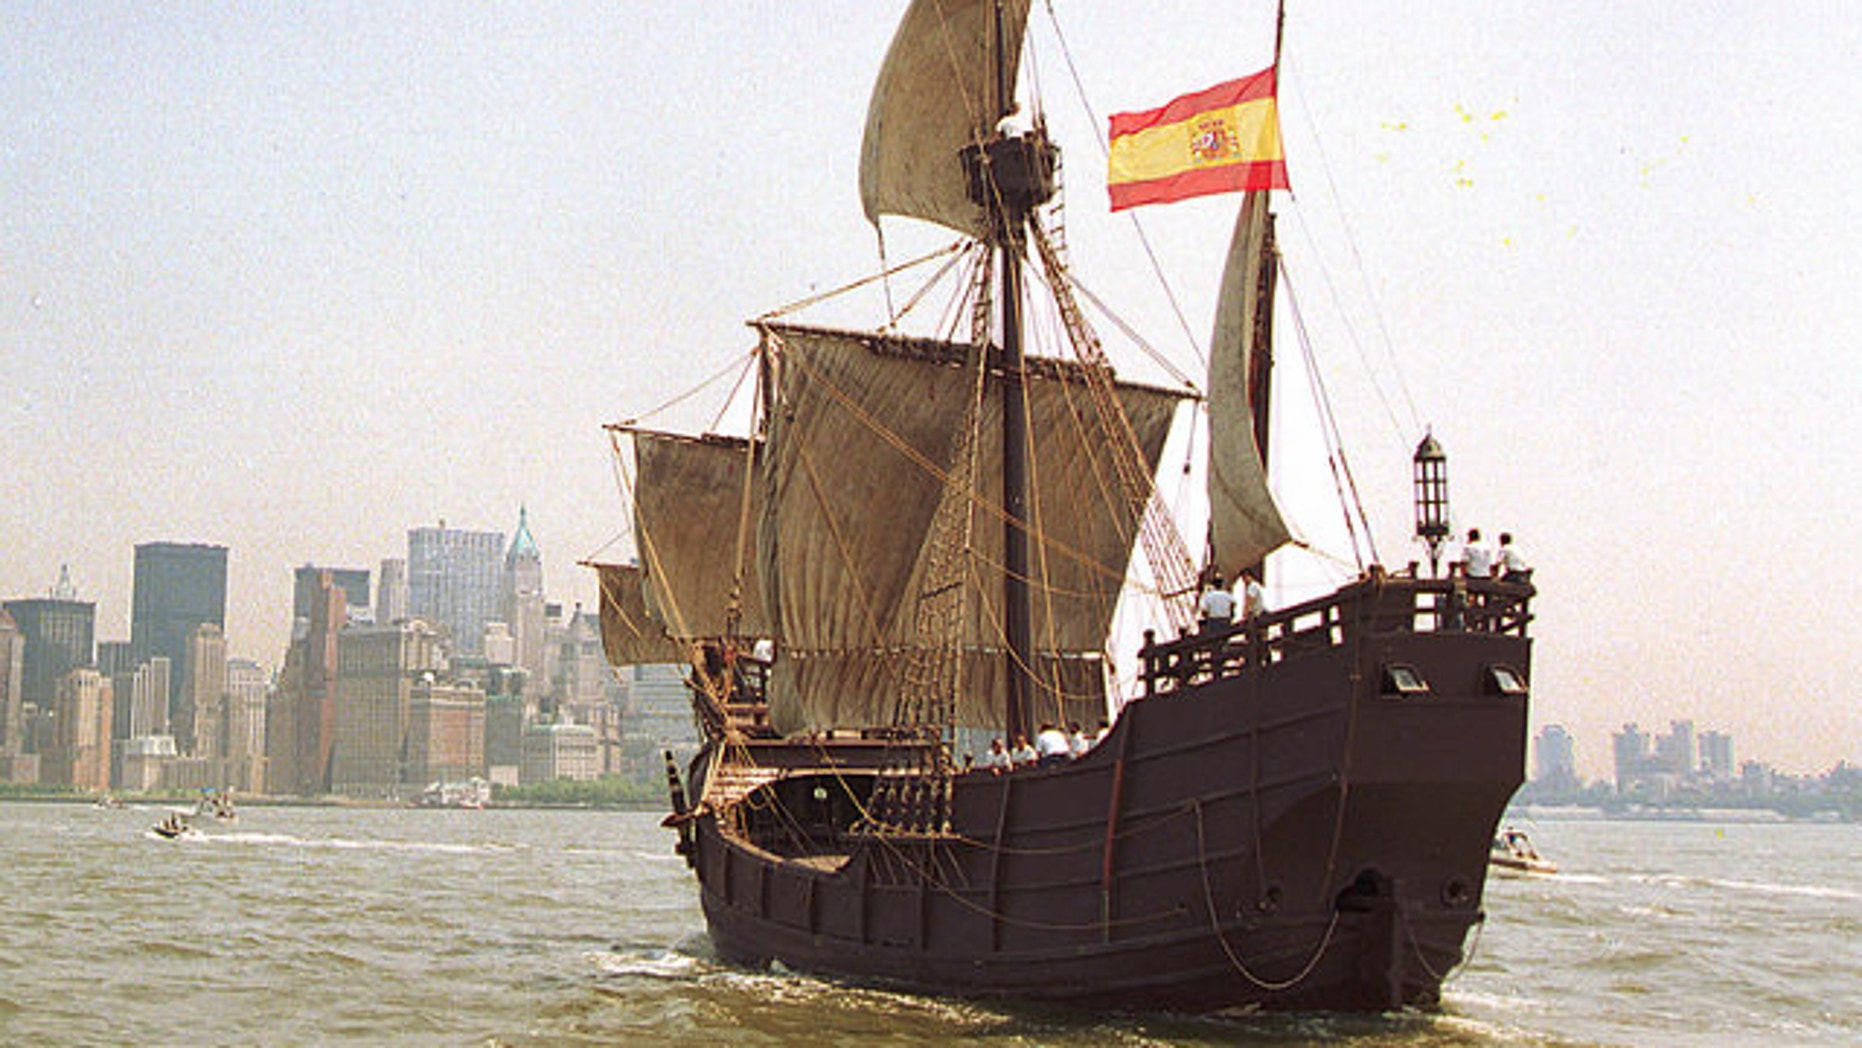 June 26, 1992: A replica of Christopher Columbus' cargo ship, the Santa Maria, is shown.